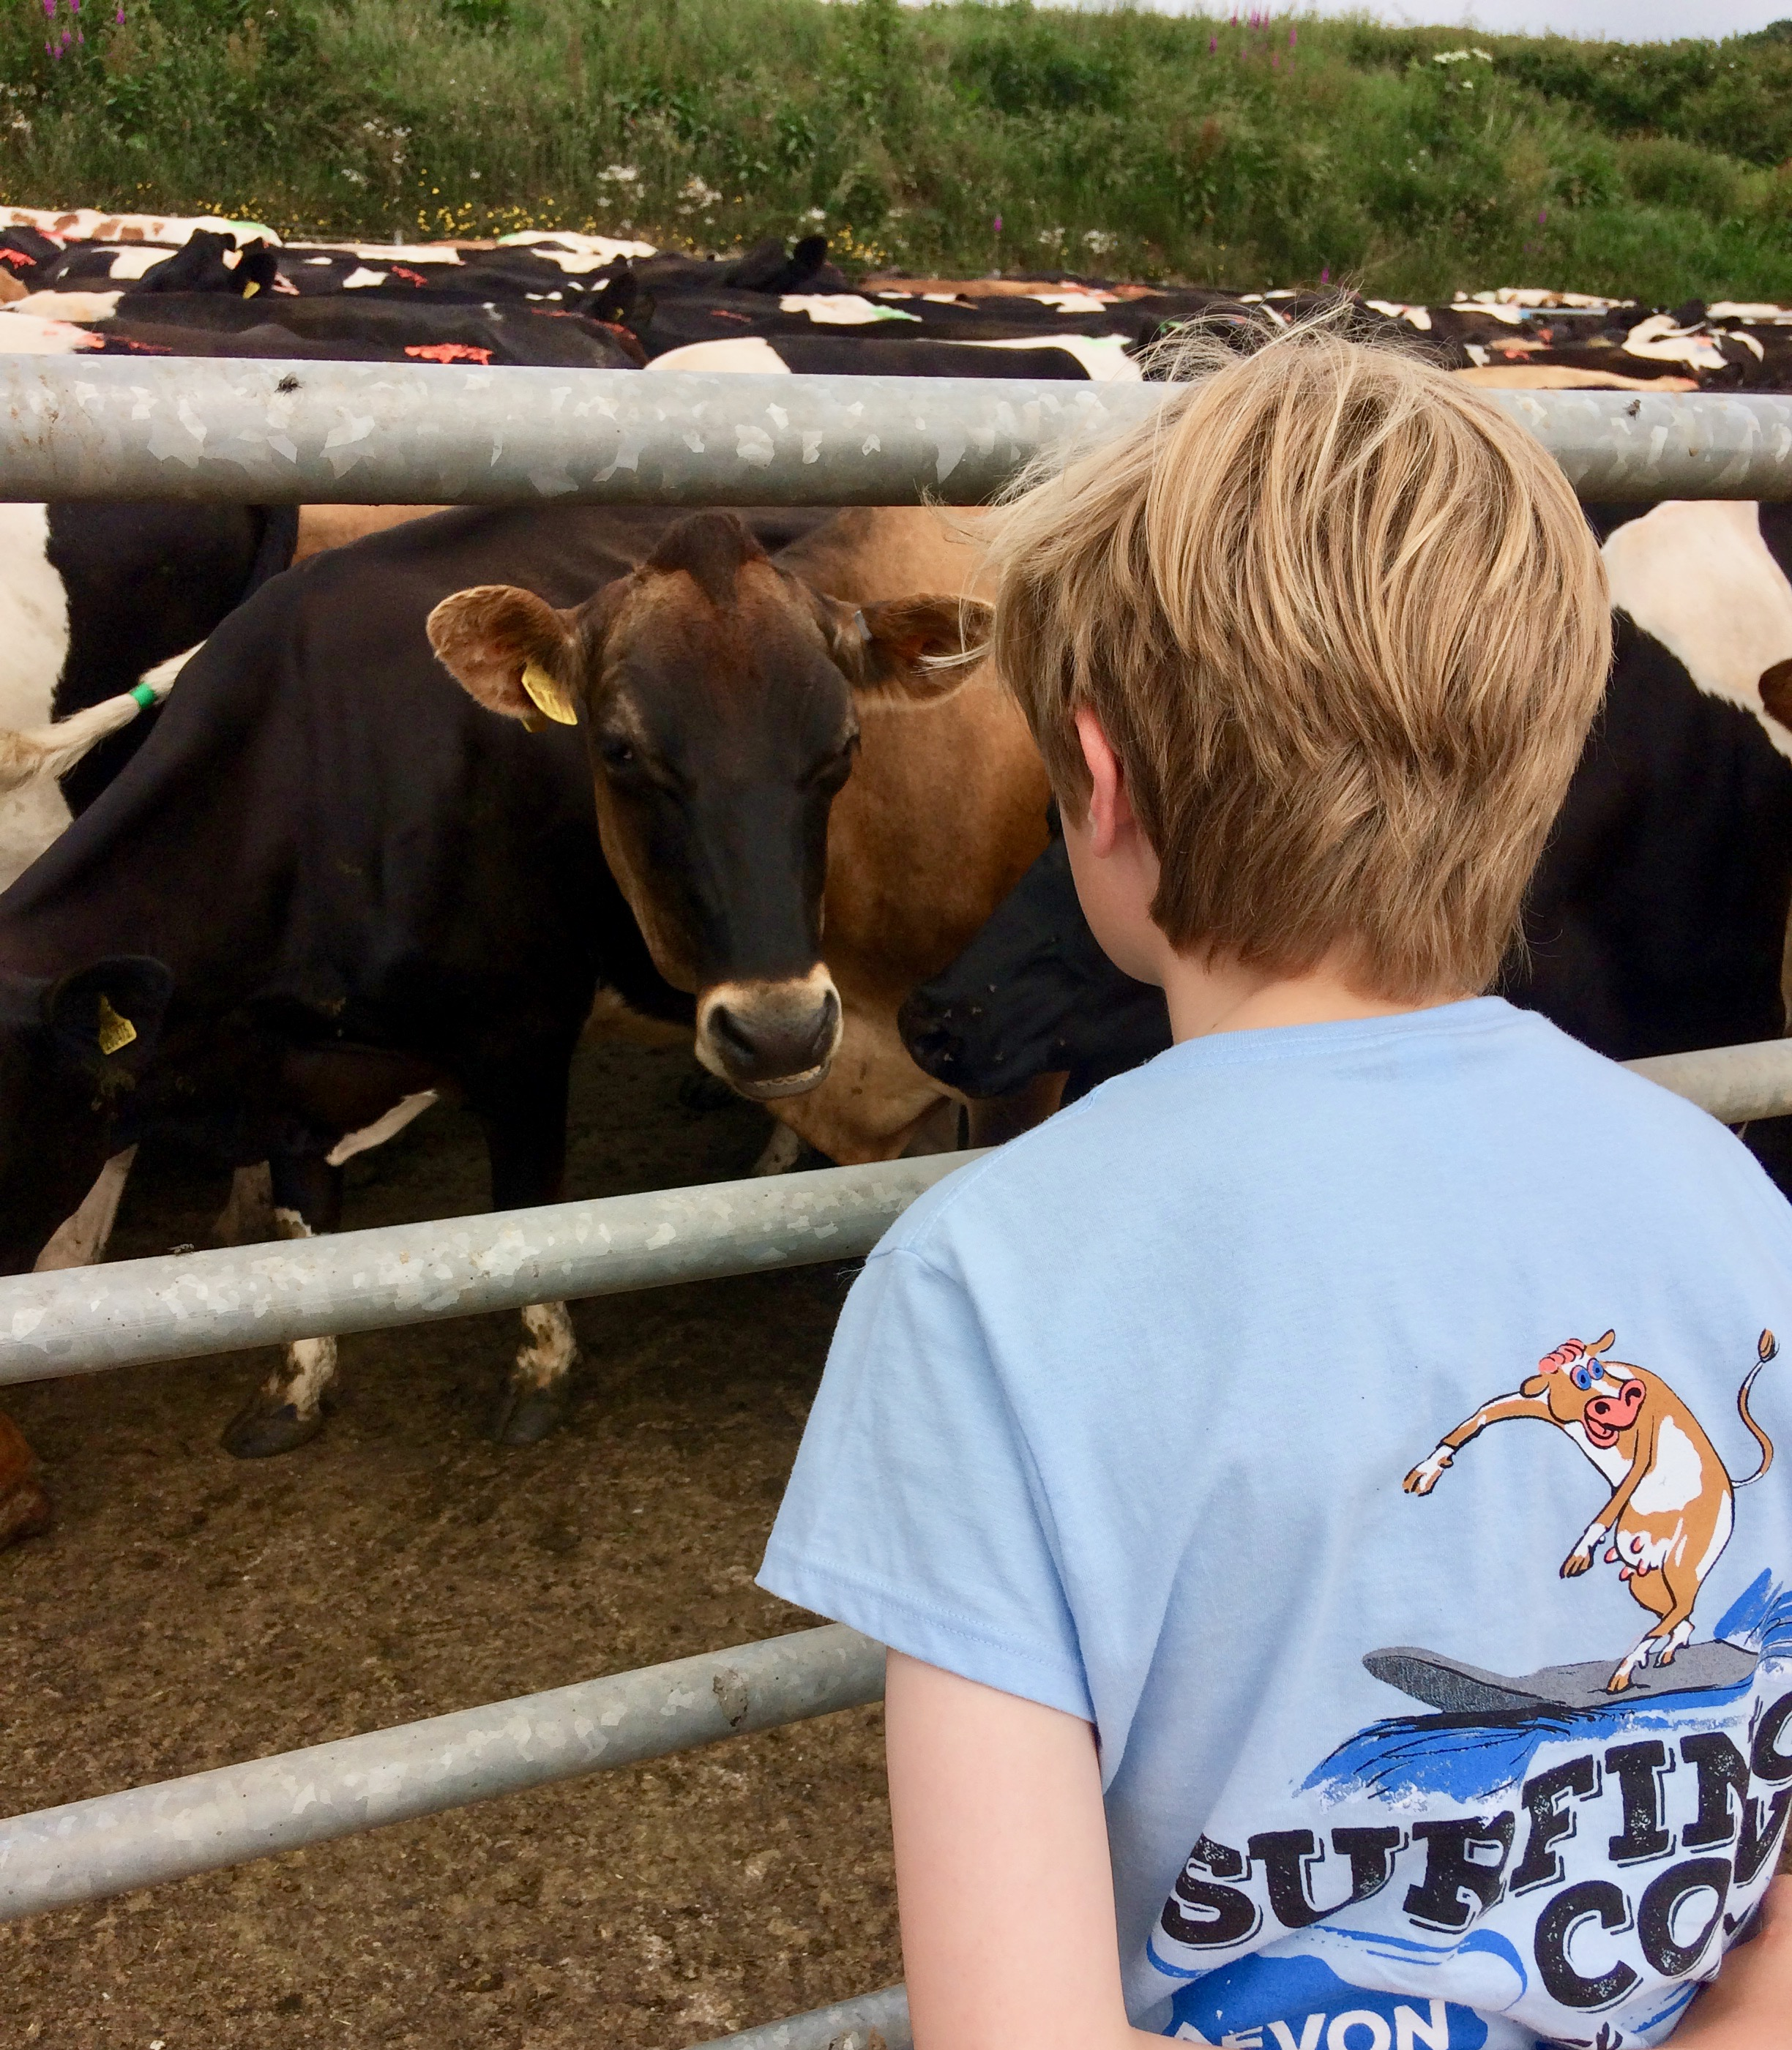 Surfing Cow ice cream scoops in on education